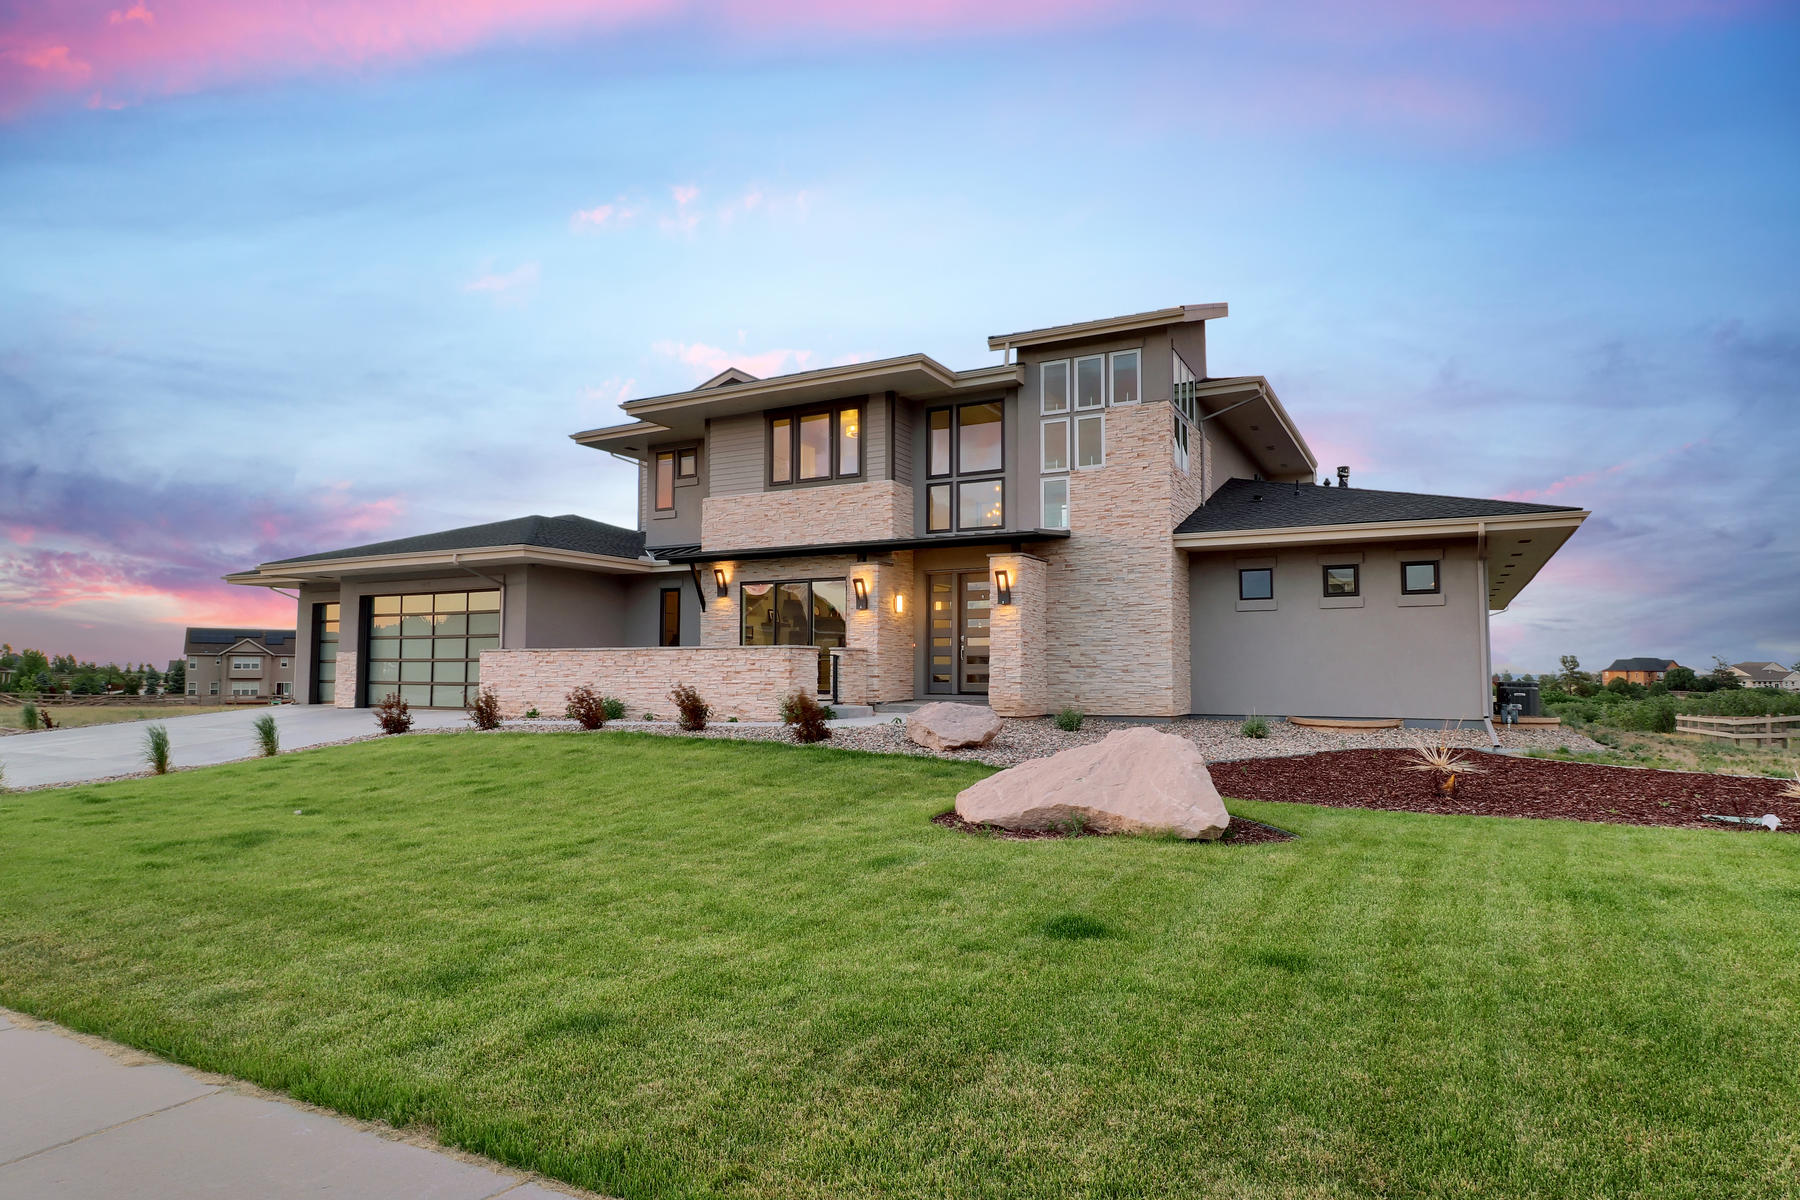 Single Family Home for Active at This custom modern design home brings nature to the interior. 2426 Eastview Dt Castle Rock, Colorado 80104 United States